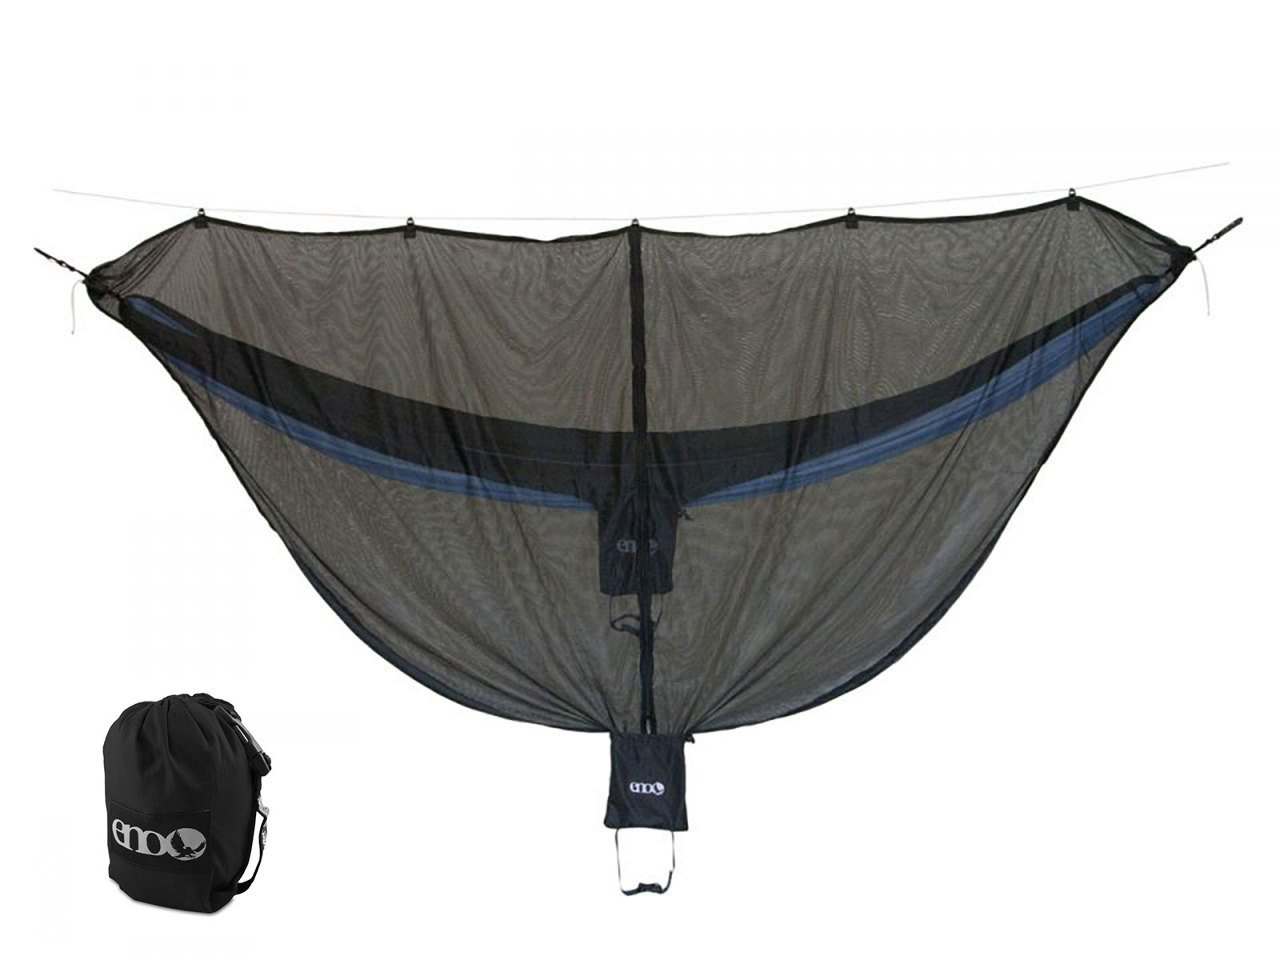 Eagles Nest ENO DoubleNest OneLink Combo - Royal/Charcoal Hammock+Black Profly